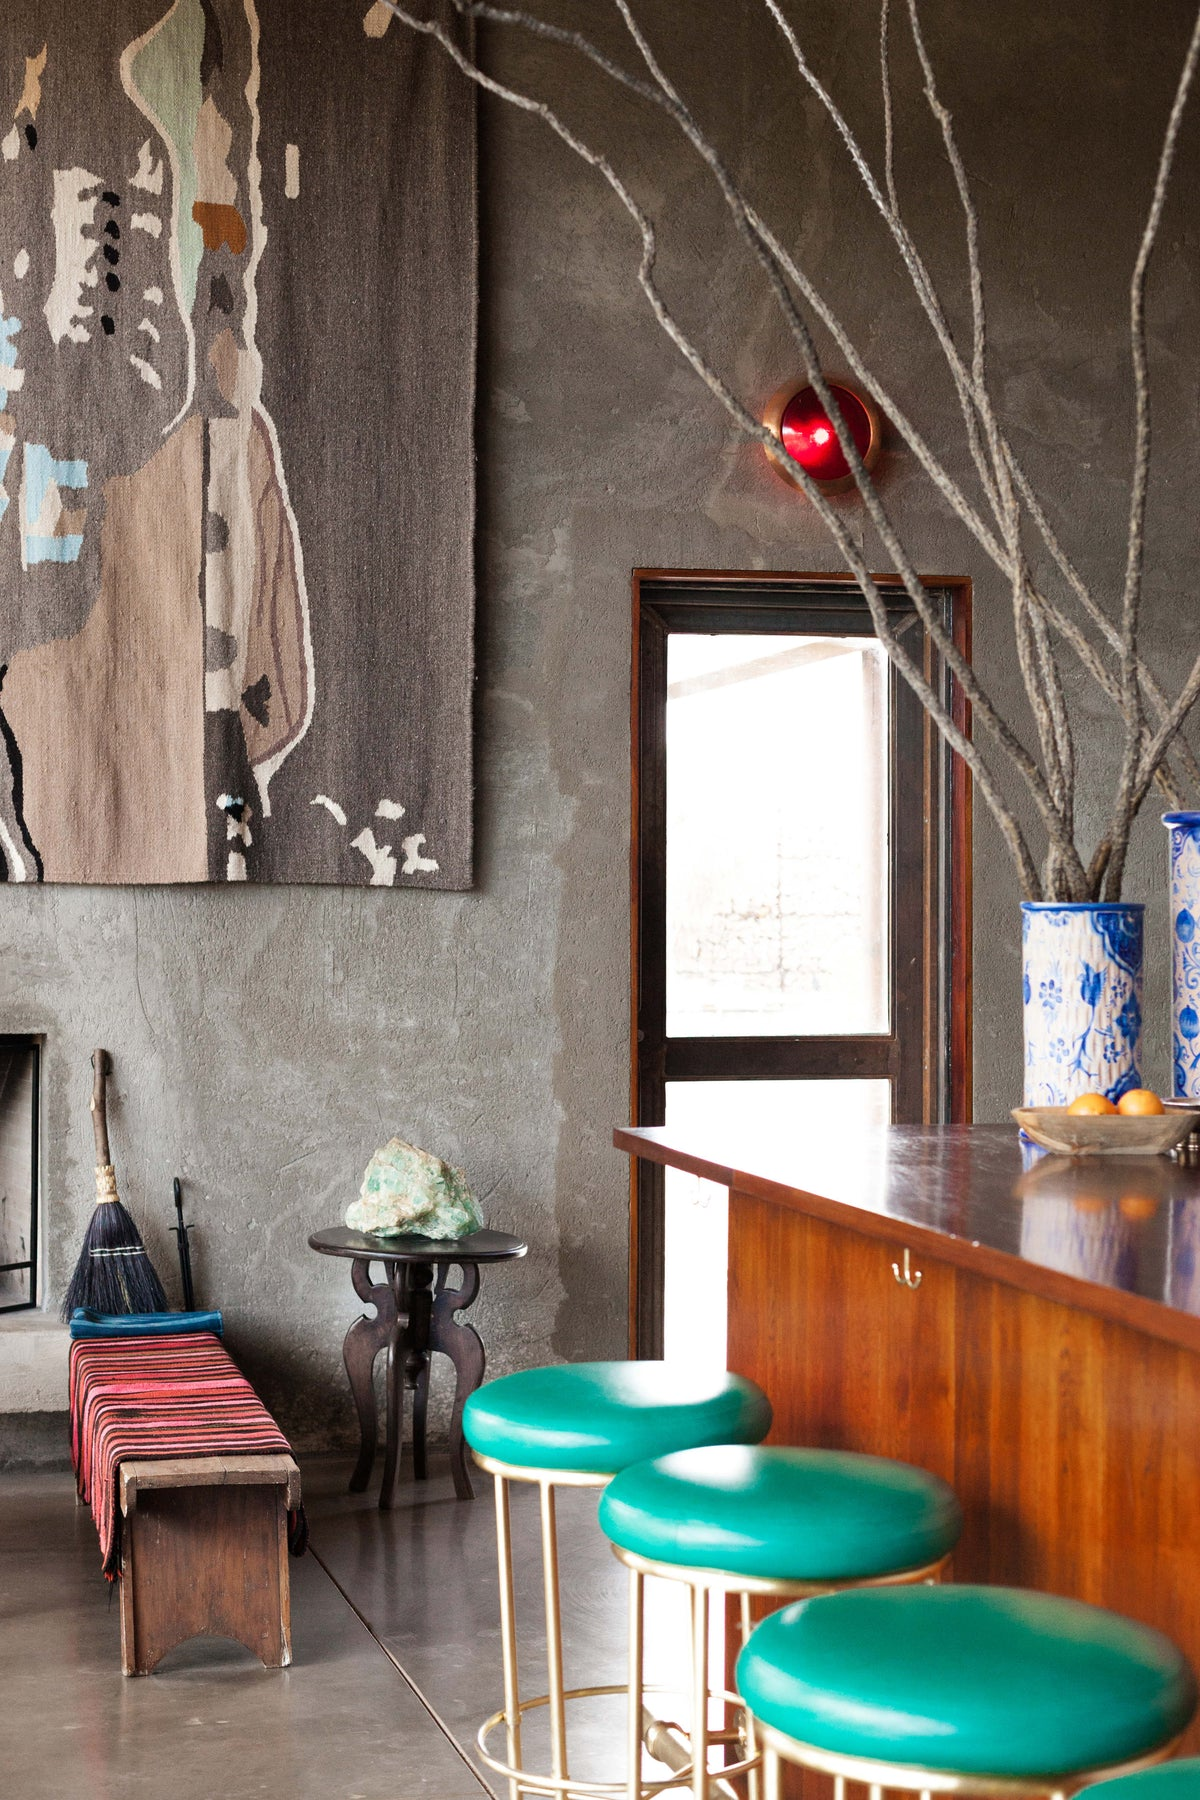 Thunderbird Hotel, Marfa - hotel bar with teal and gold barstools in industrial chic setting